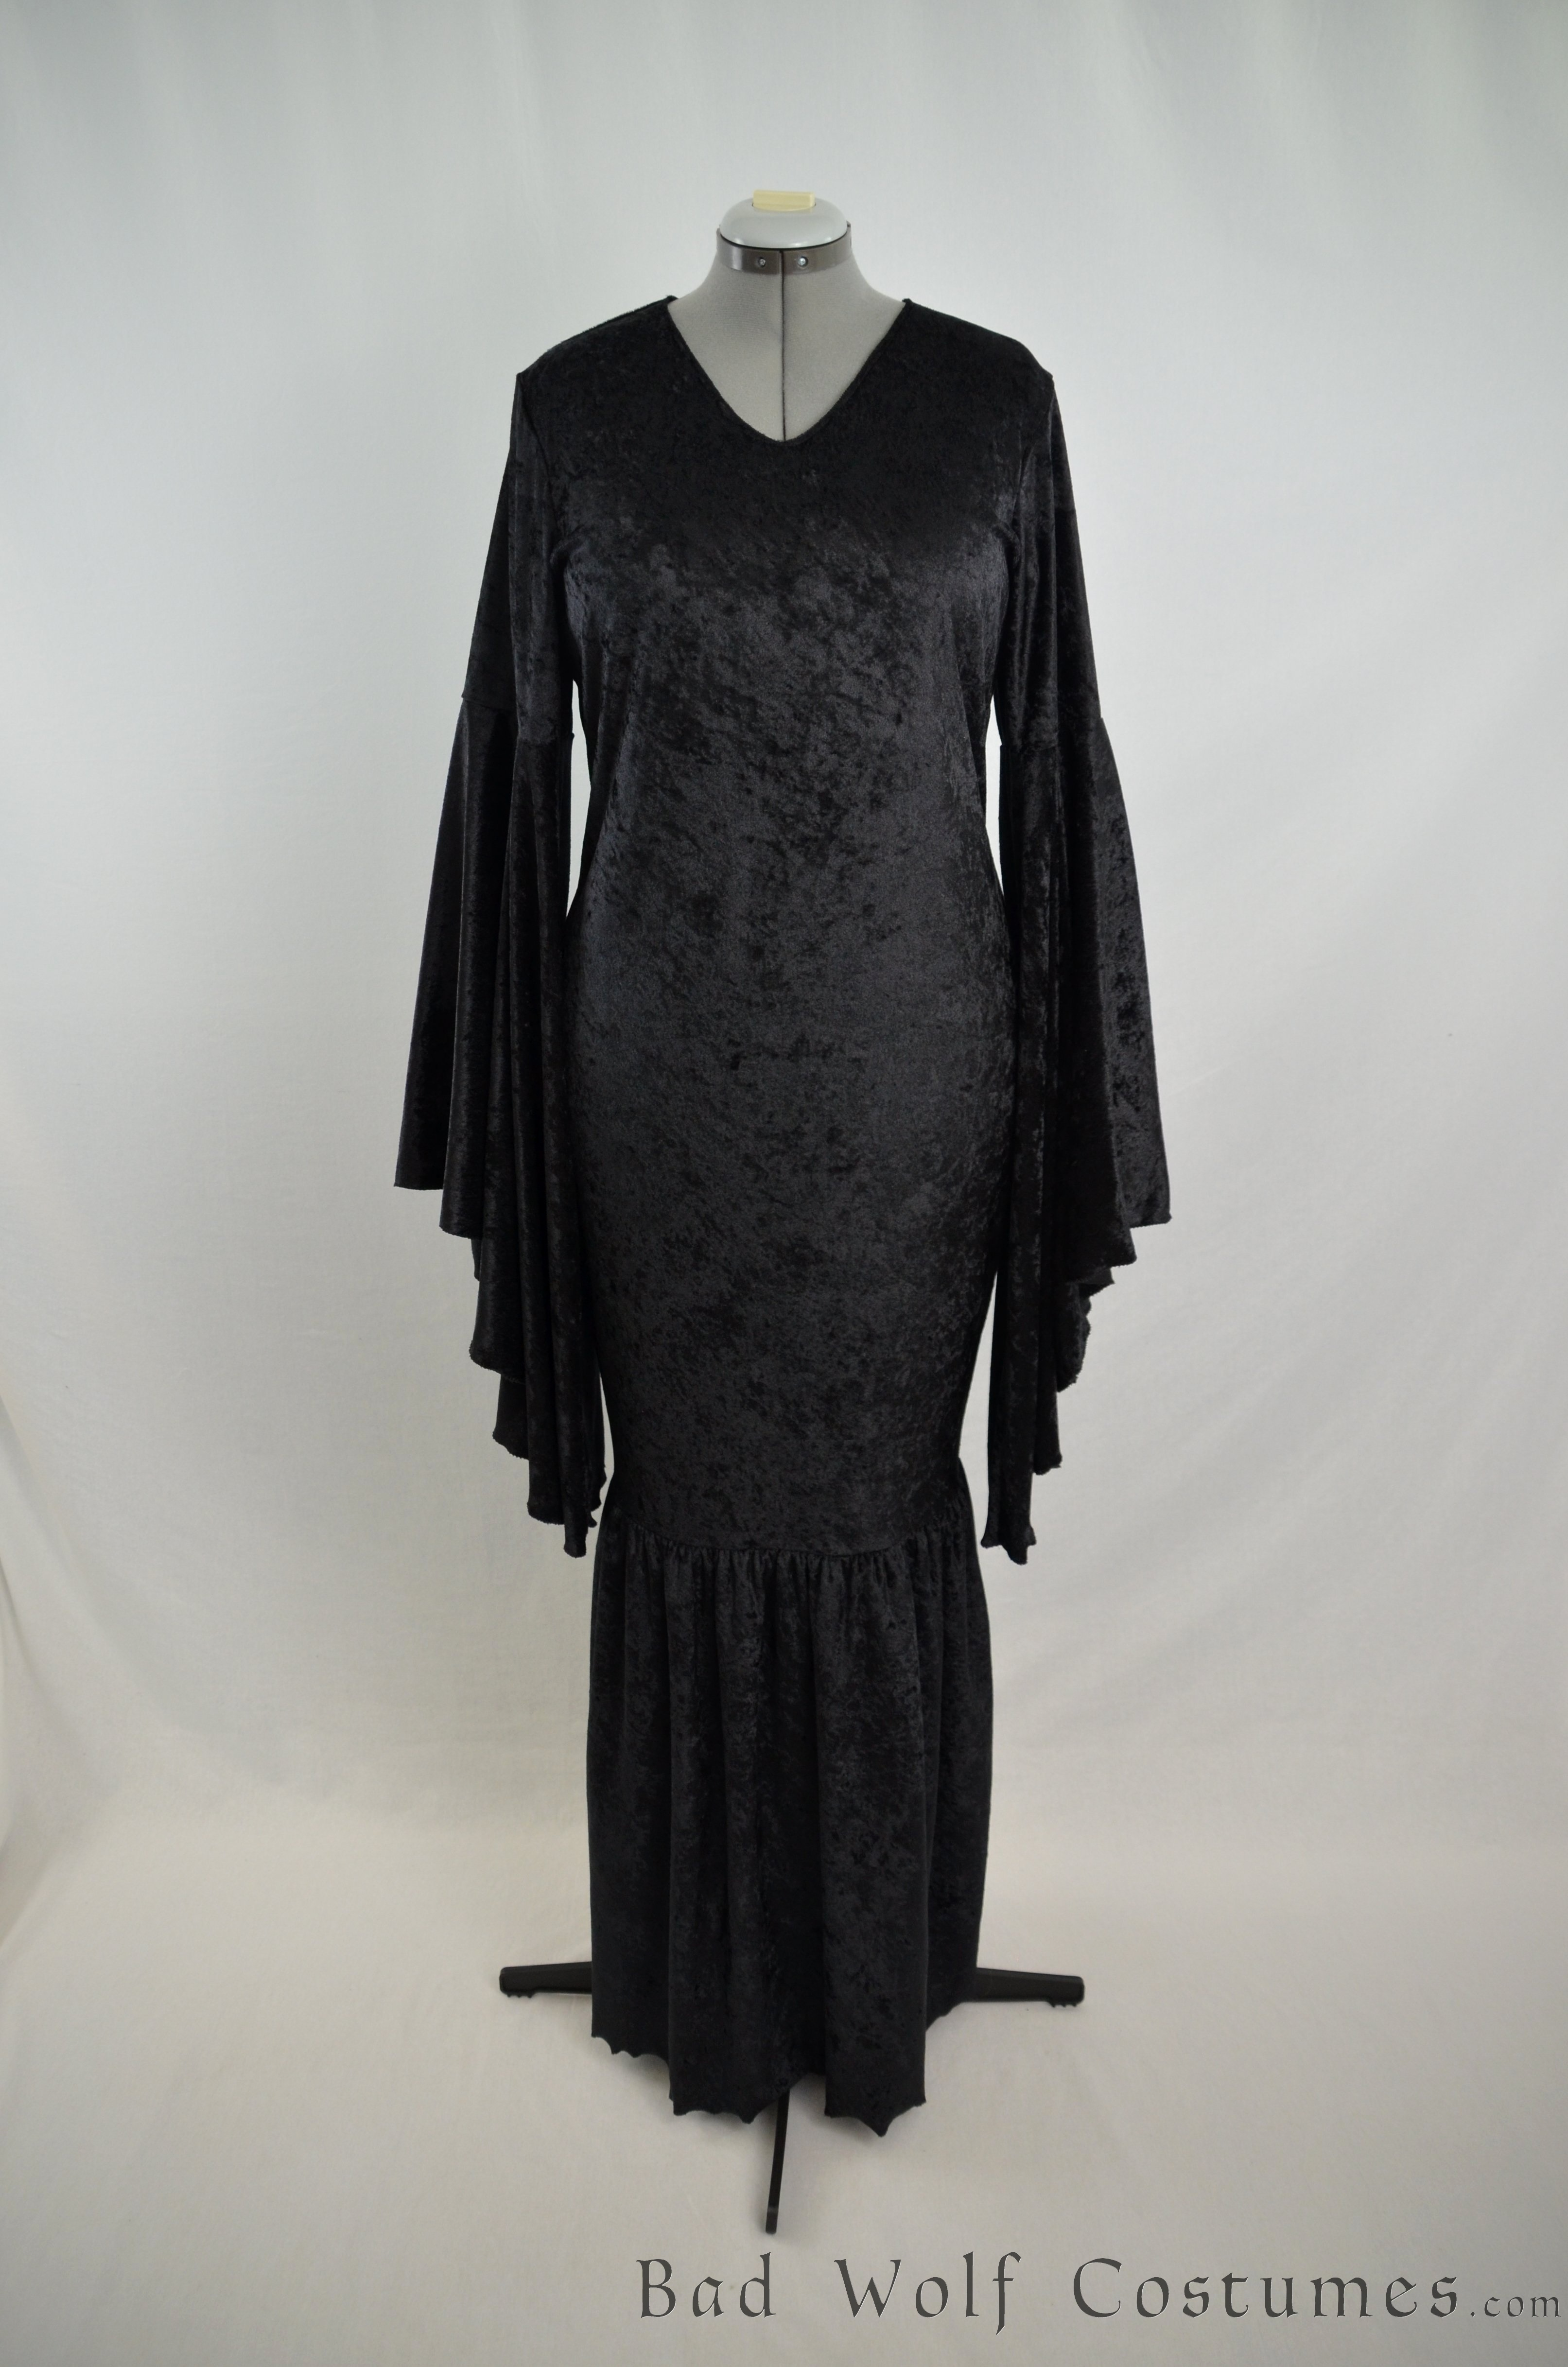 Morticia Addams Dress Gown - Gothic, vampire, mermaid, costume ...